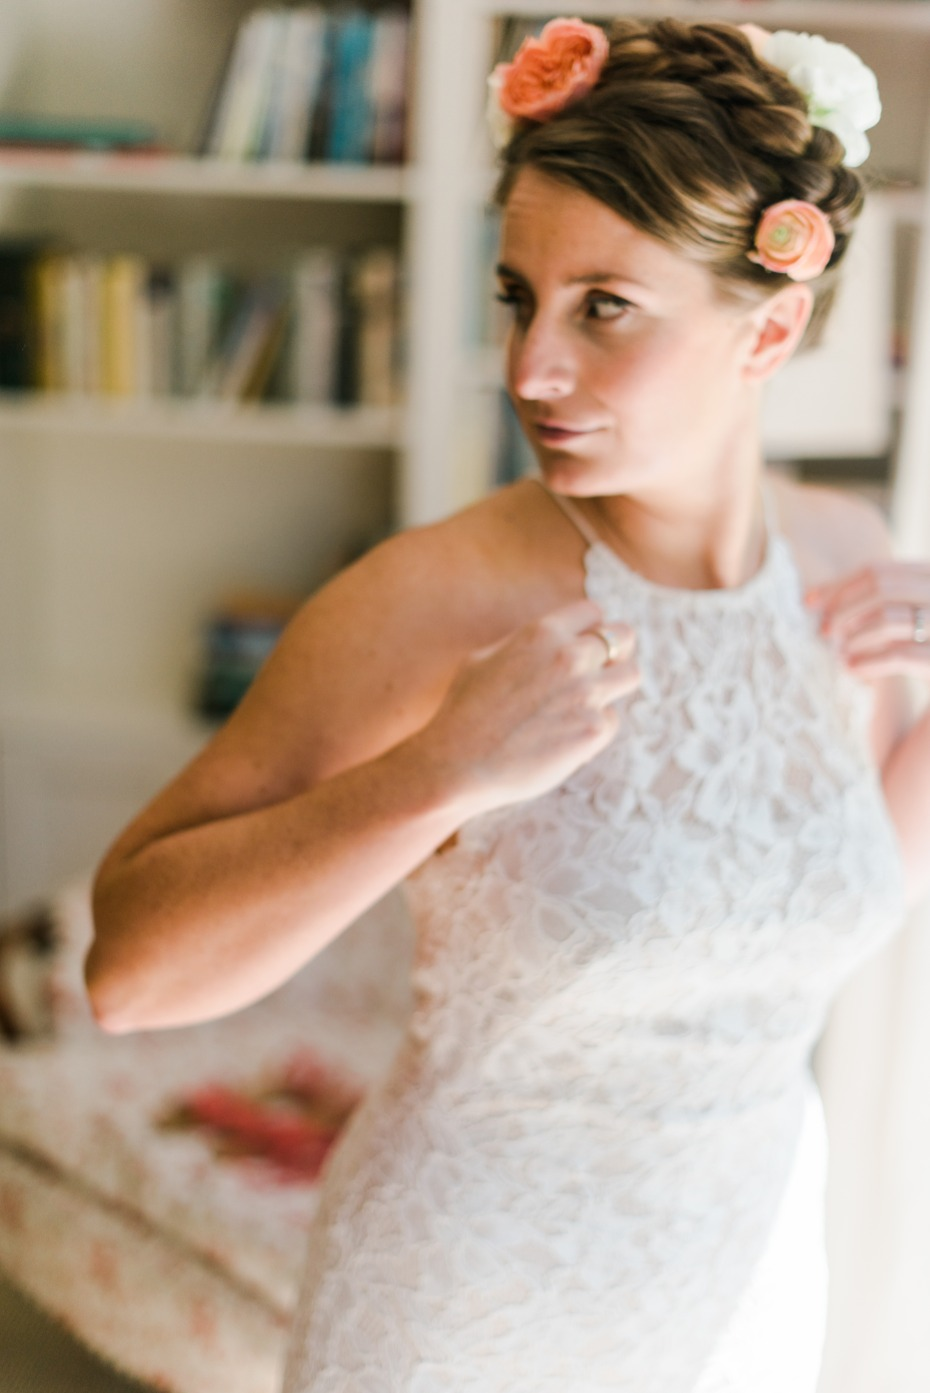 bride preparing for her big walk down the aisle